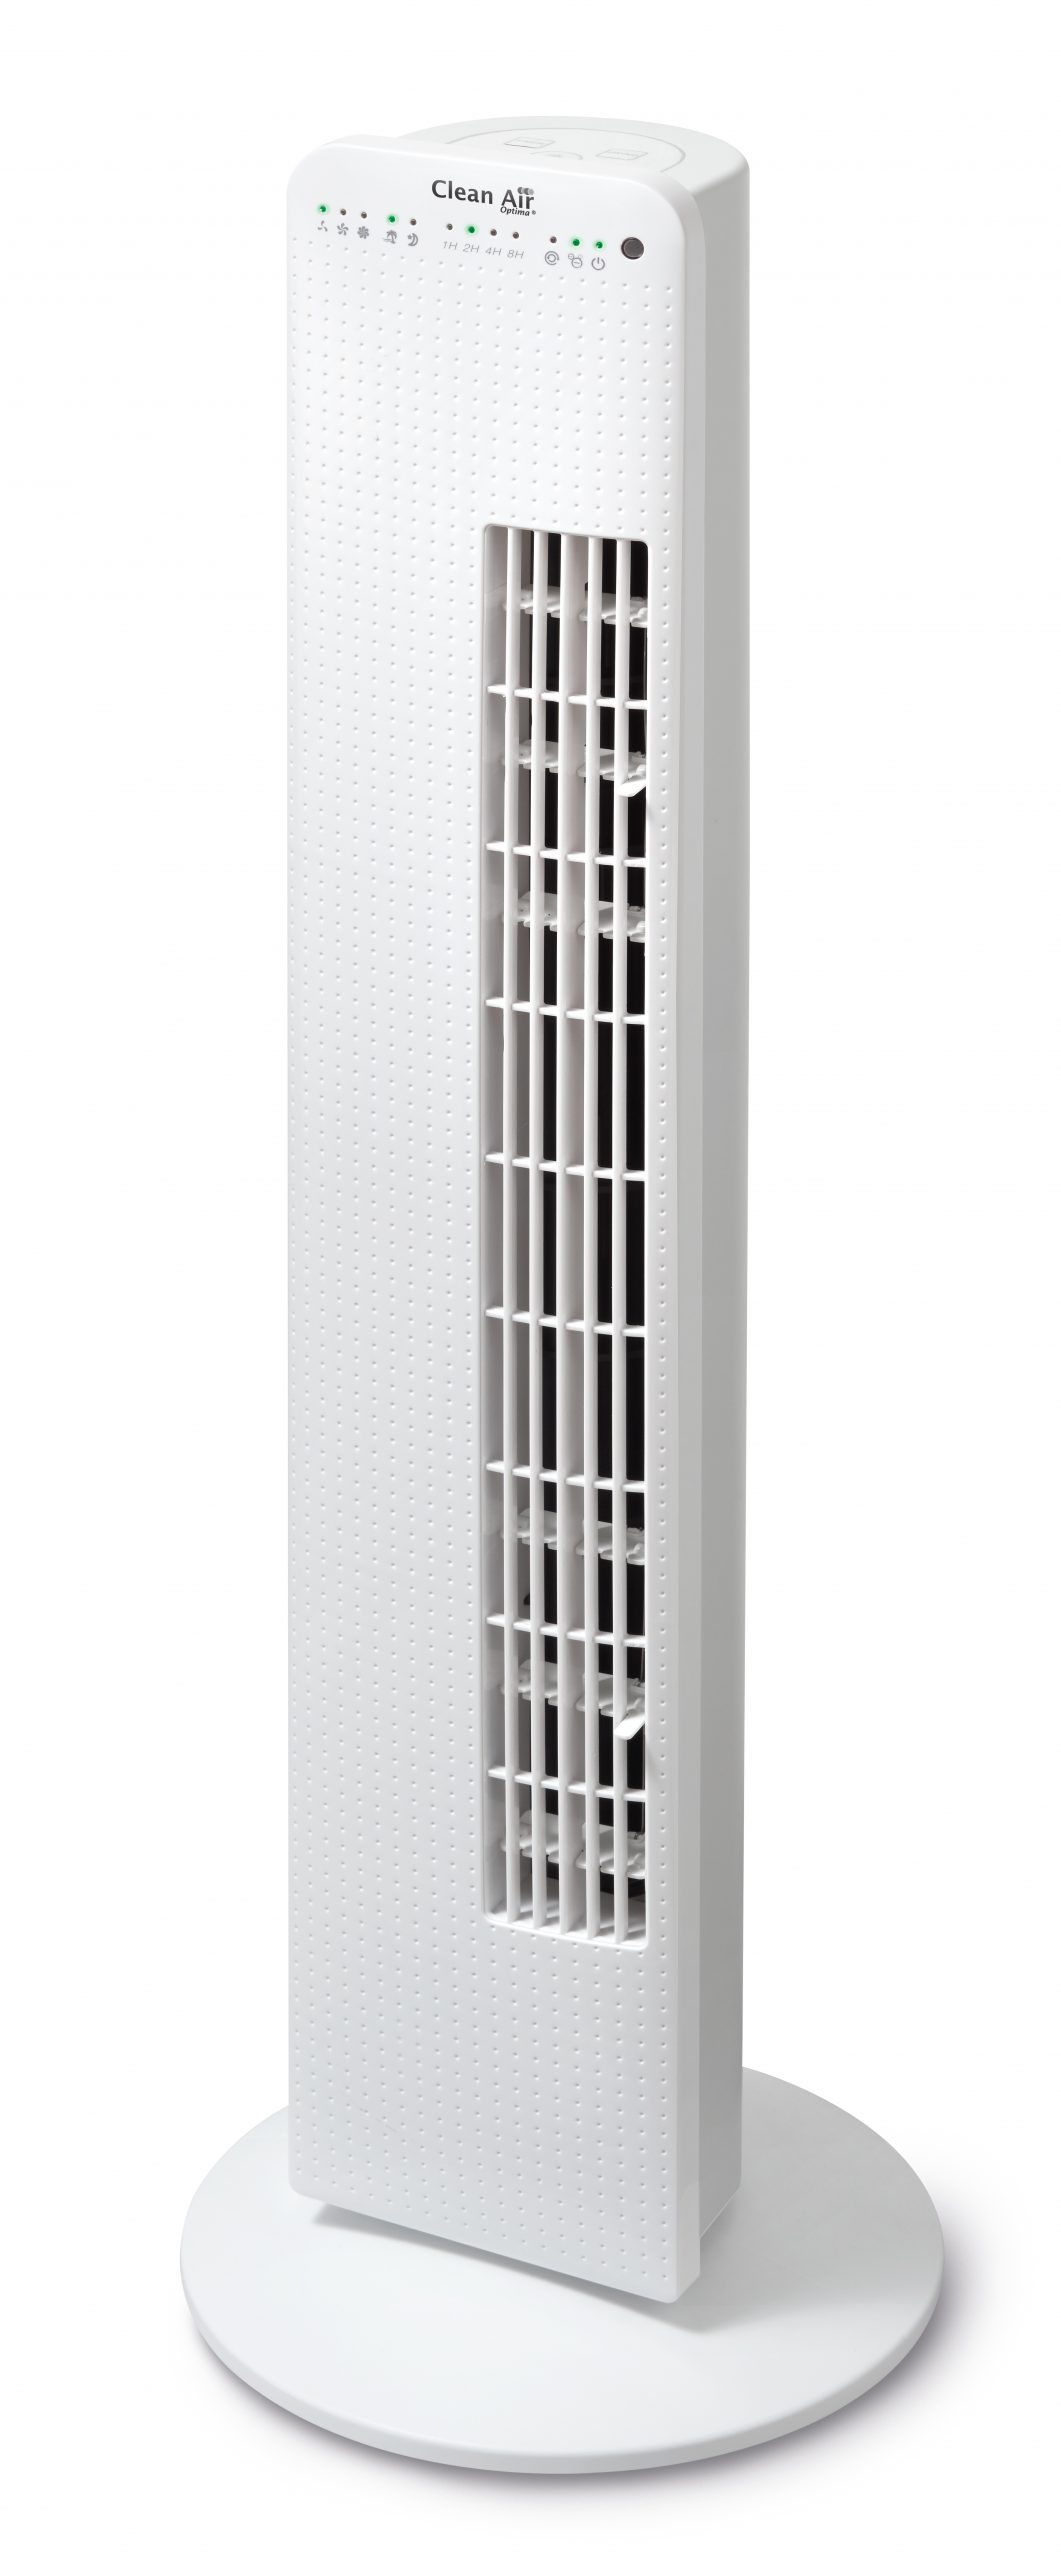 Luxery Tower Fan With Ionizer Ca 405 with dimensions 3541 X 8547